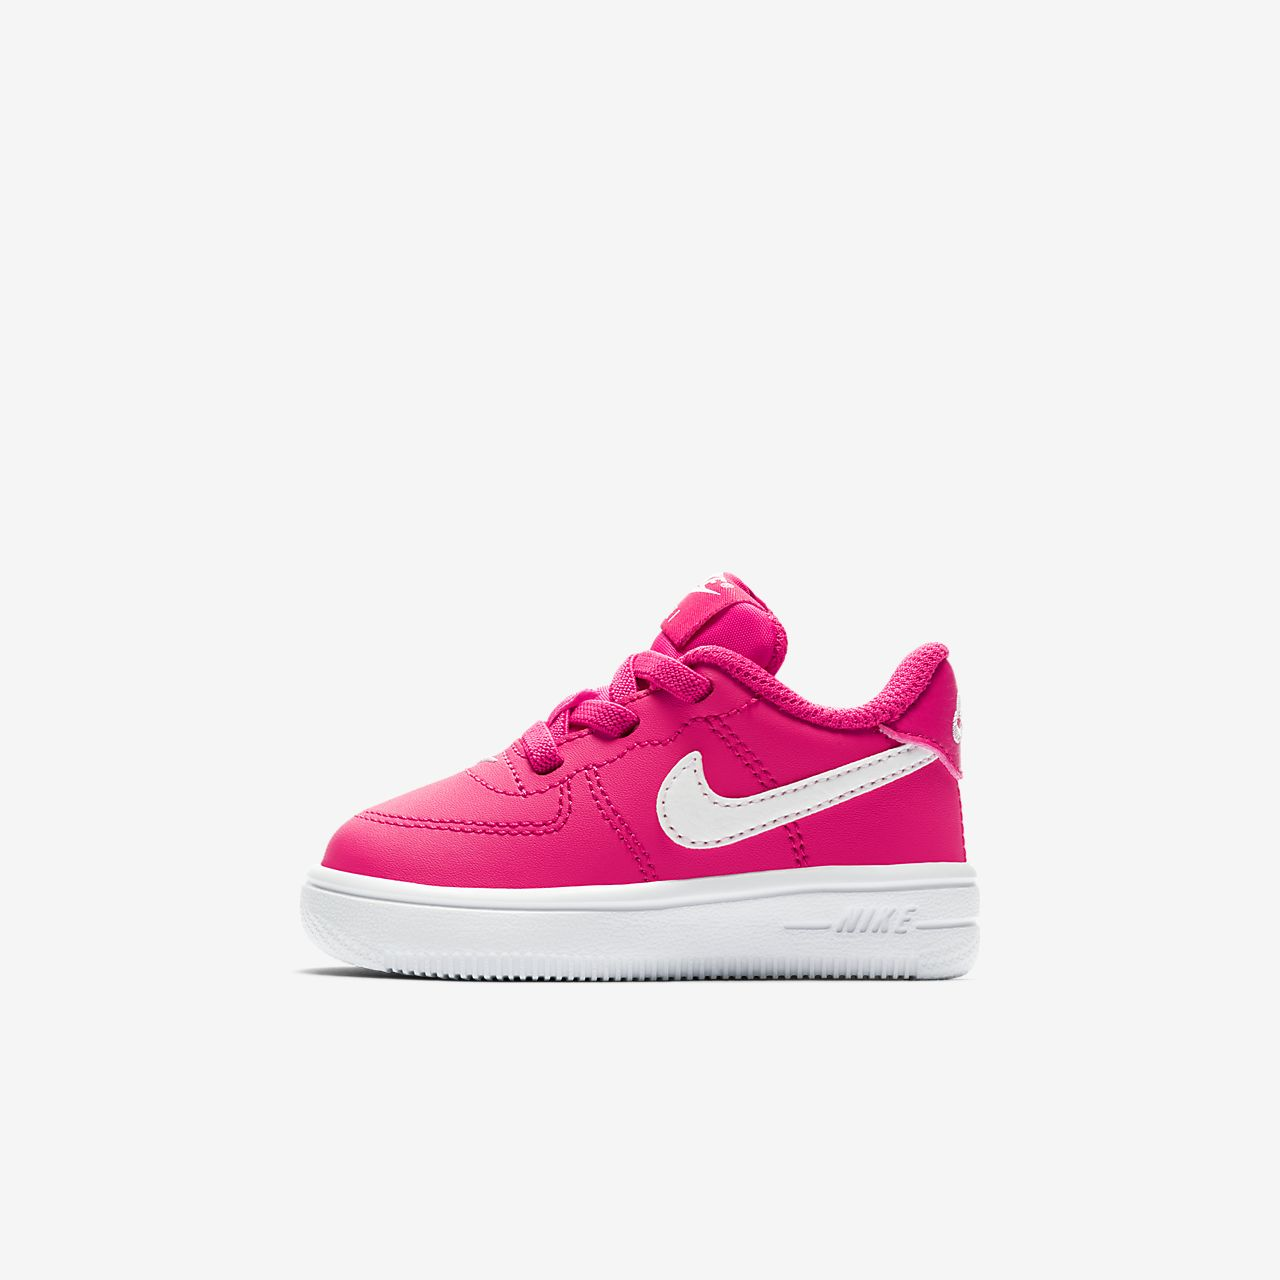 4ed2ede255 Nike Force 1 '18 Baby & Toddler Shoe